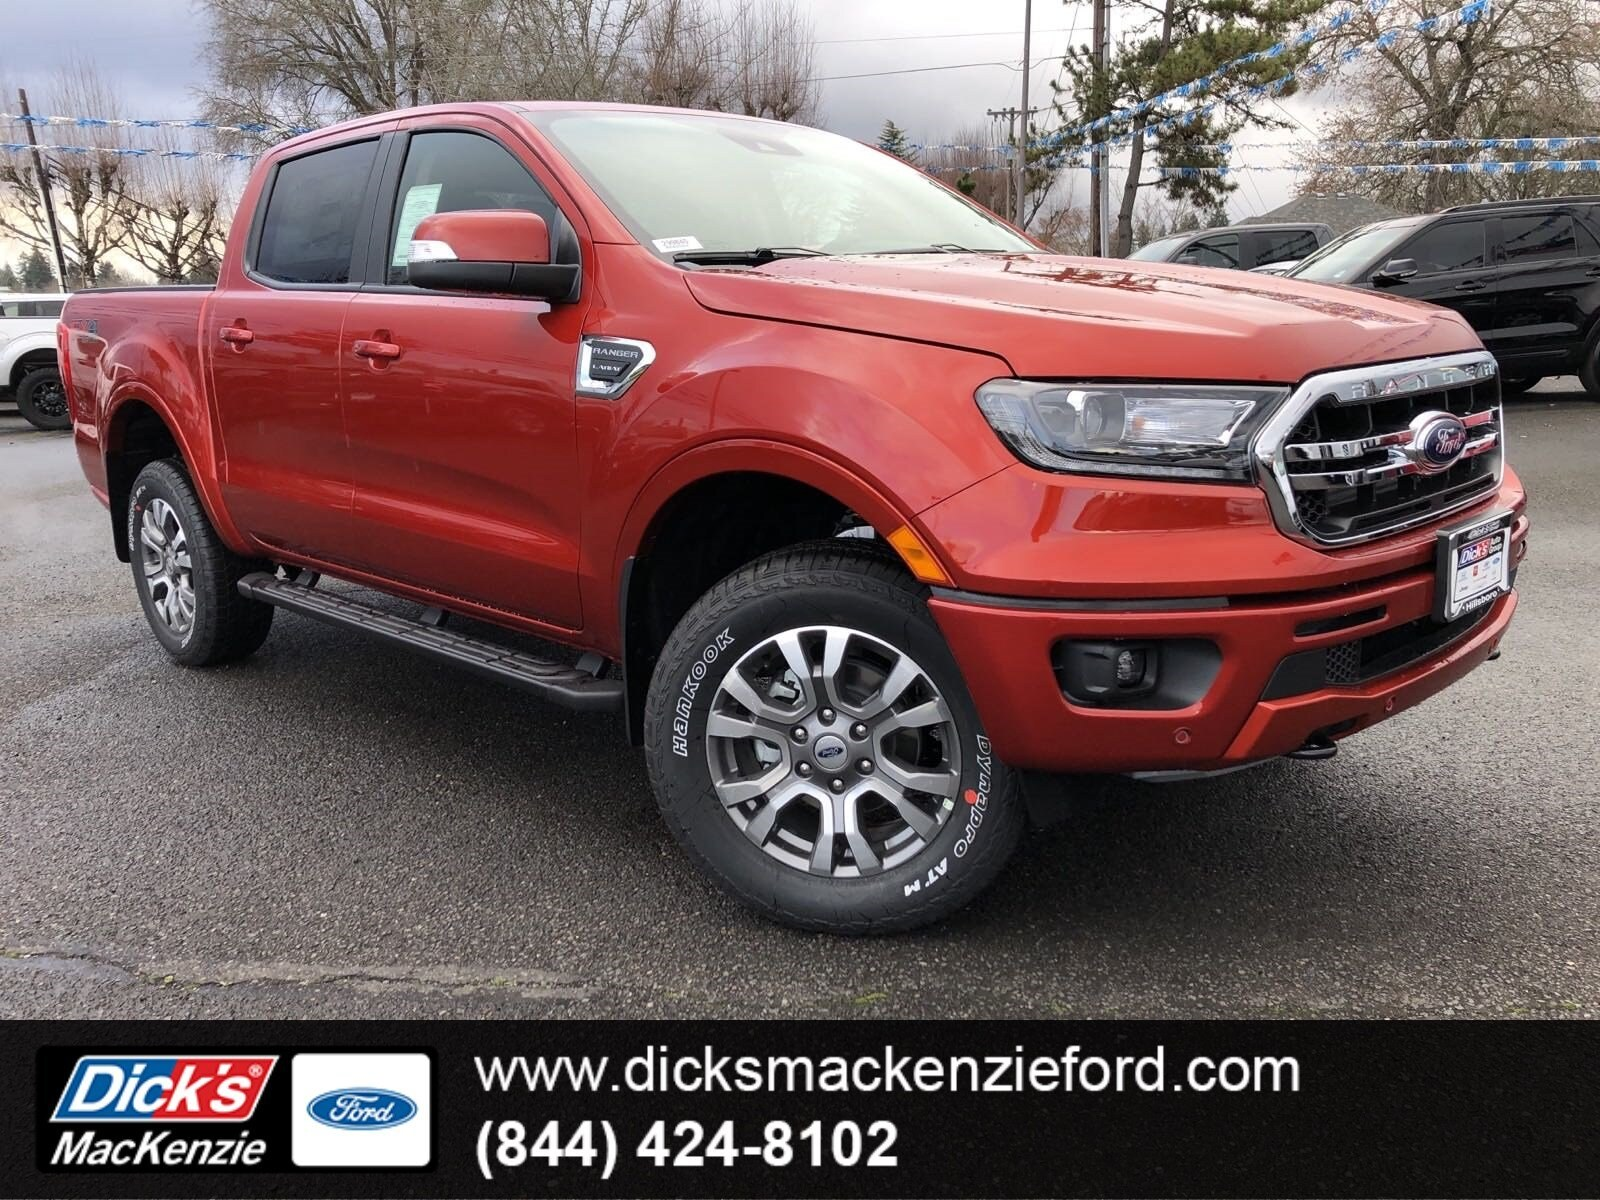 2019 Ranger SuperCrew Cab 4x4, Pickup #299840 - photo 1